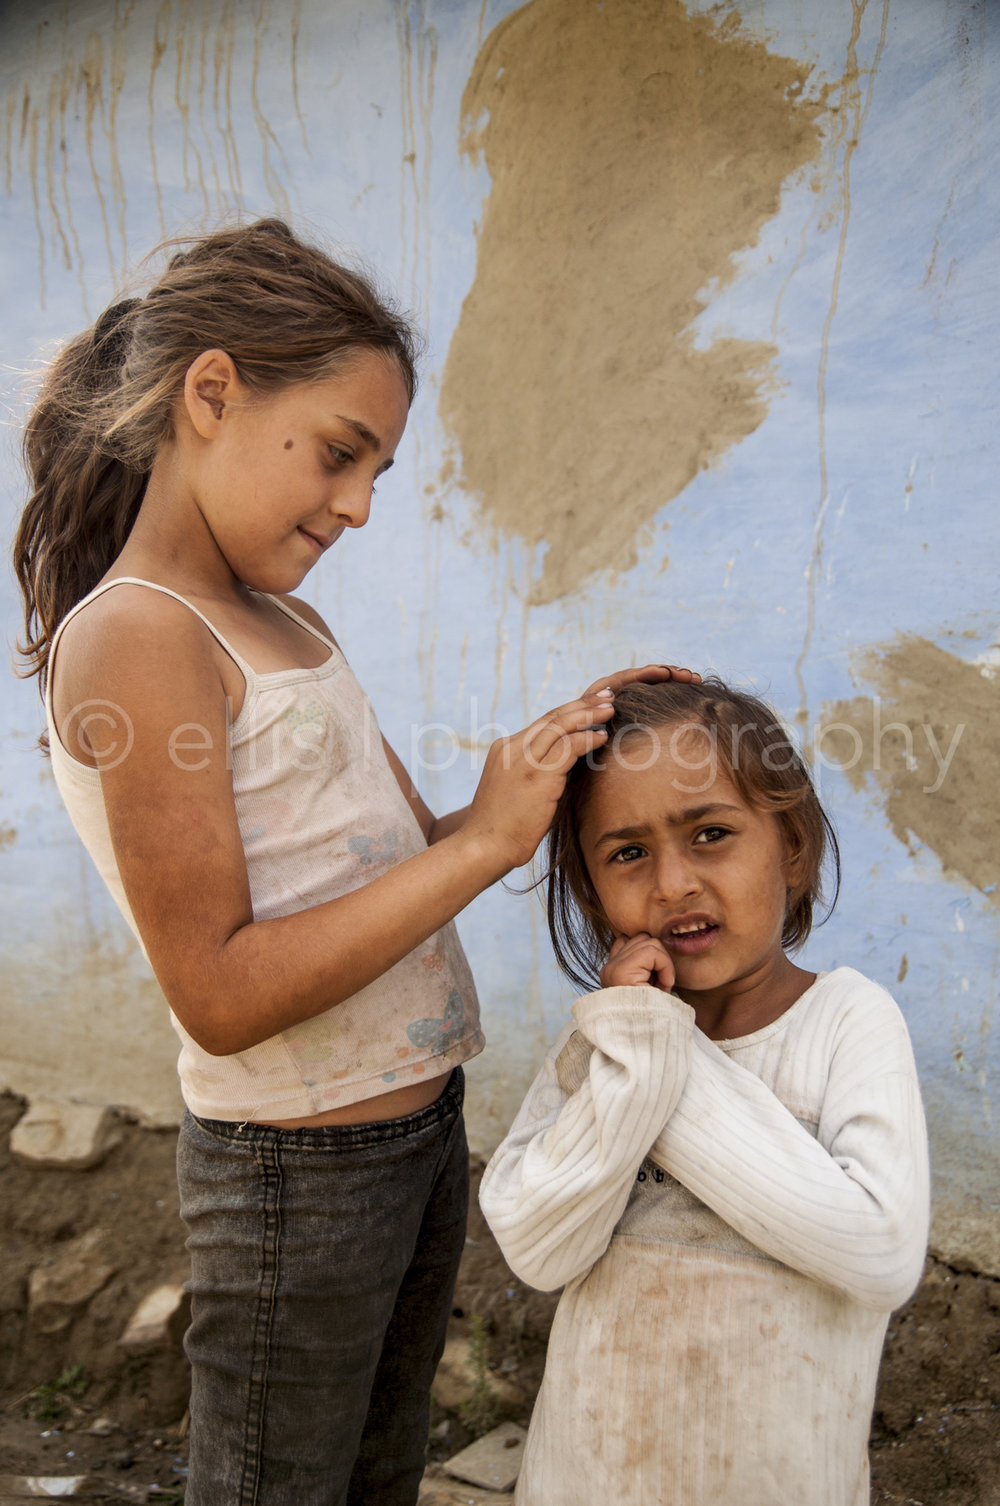 Young Romanian gipsy girl is fixing the hair of her younger sister, because their mother has no time. They are totally in their own world. Not minding me taking pictures. Daily life photography taken by Ellis Peeters photography.